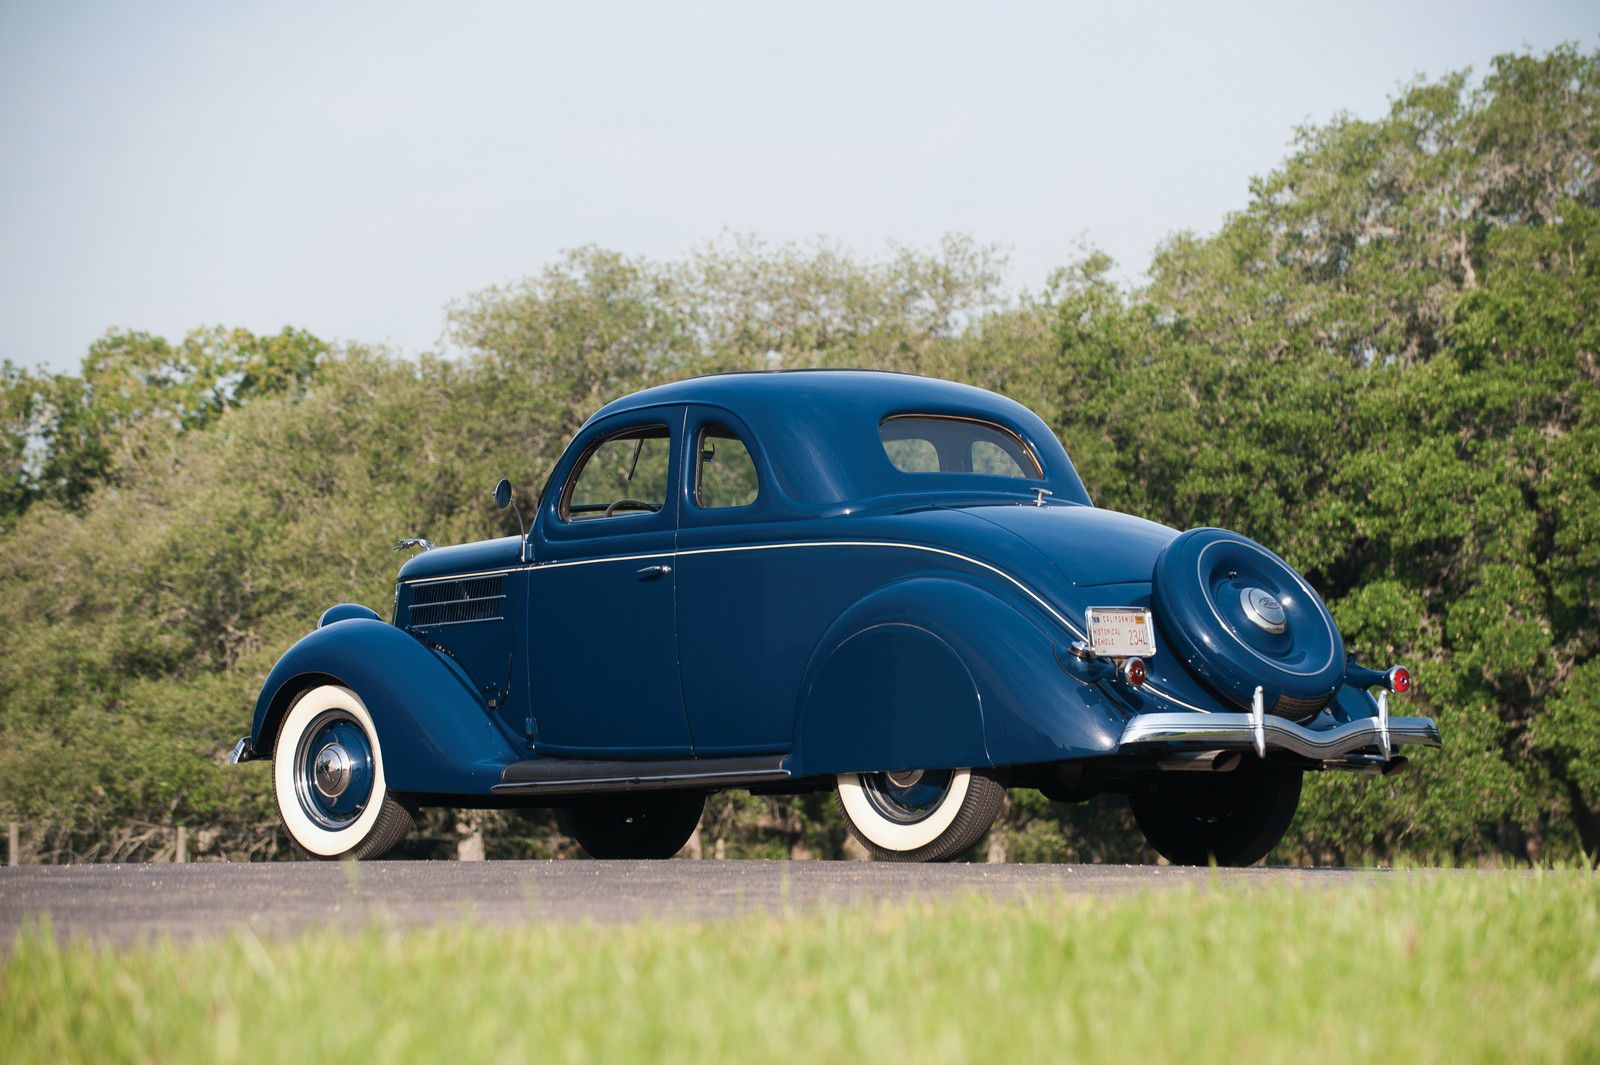 VOITURES DE LEGENDE (1150) : FORD  V8 DeLuxe COUPE FIVE WINDOW - 1936